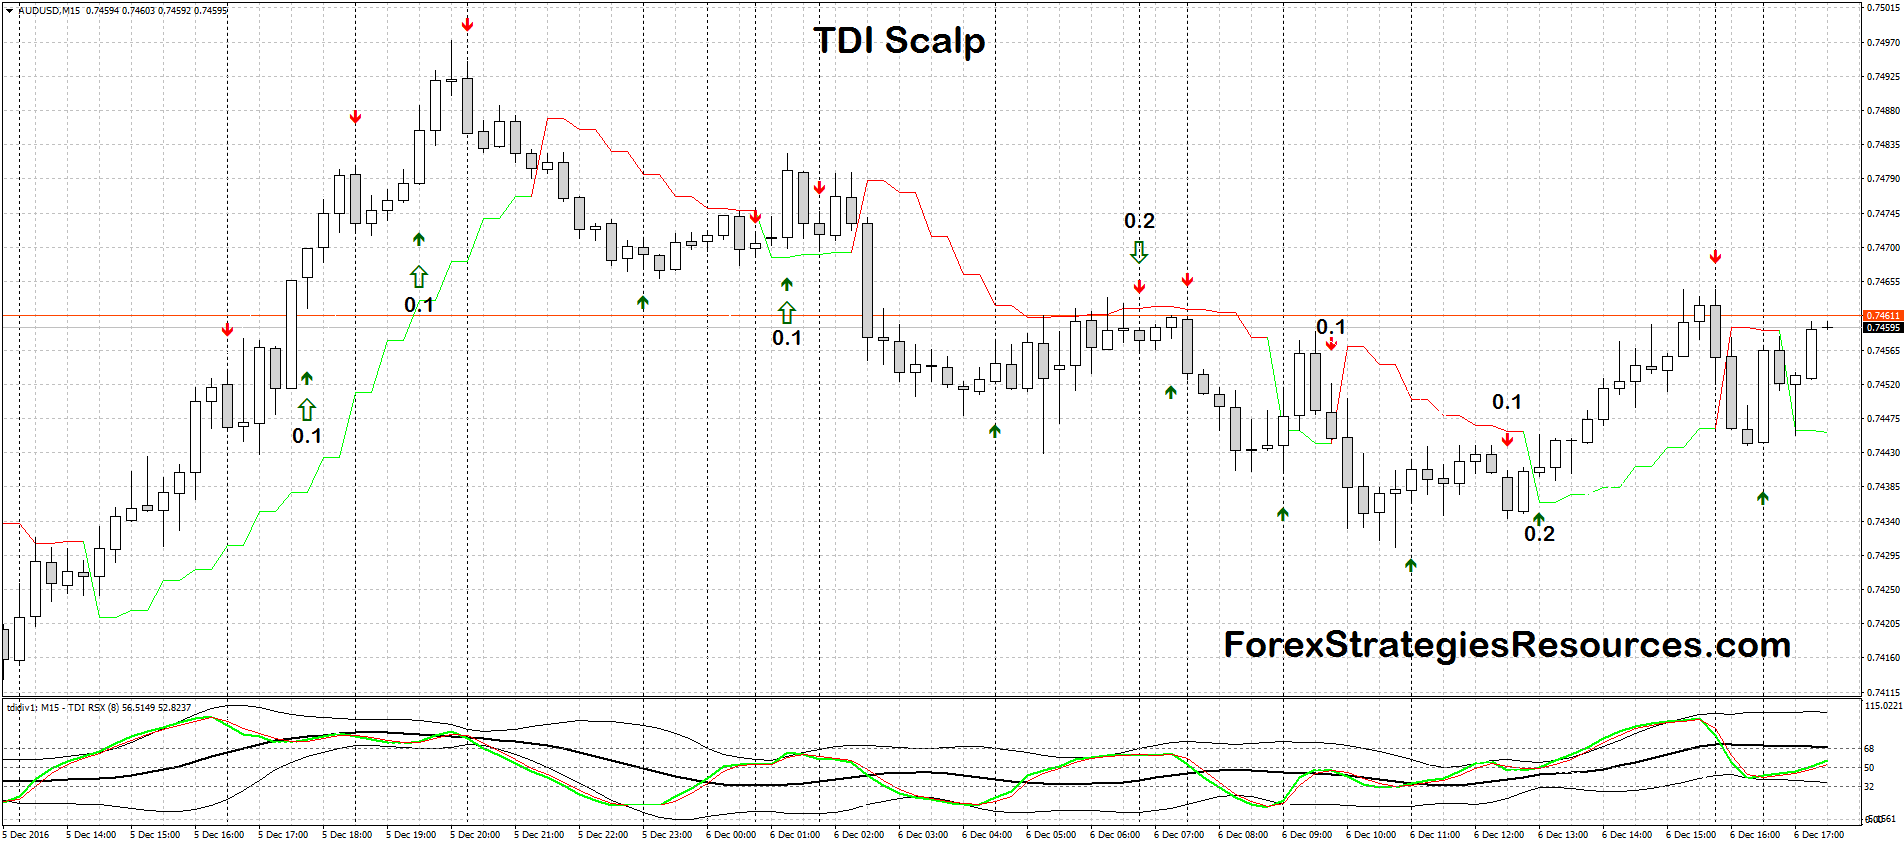 TDI 10 pips Scalp - Forex Strategies - Forex Resources - Forex